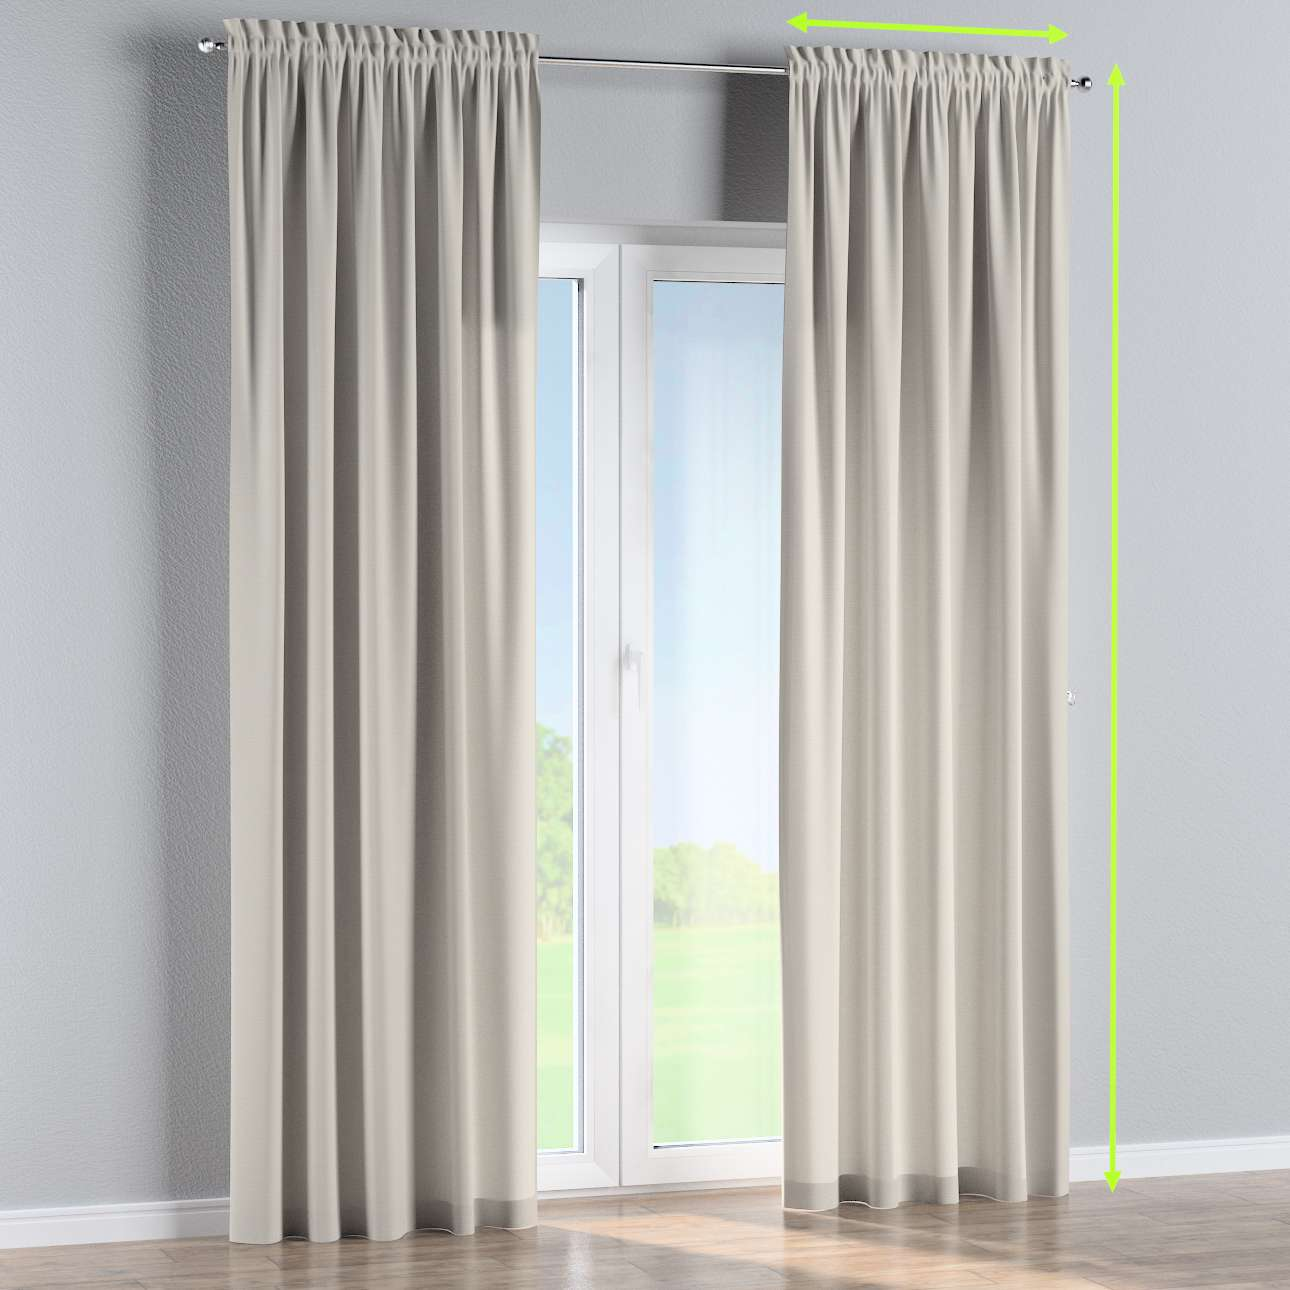 Slot and frill curtains in collection Cotton Panama, fabric: 702-31